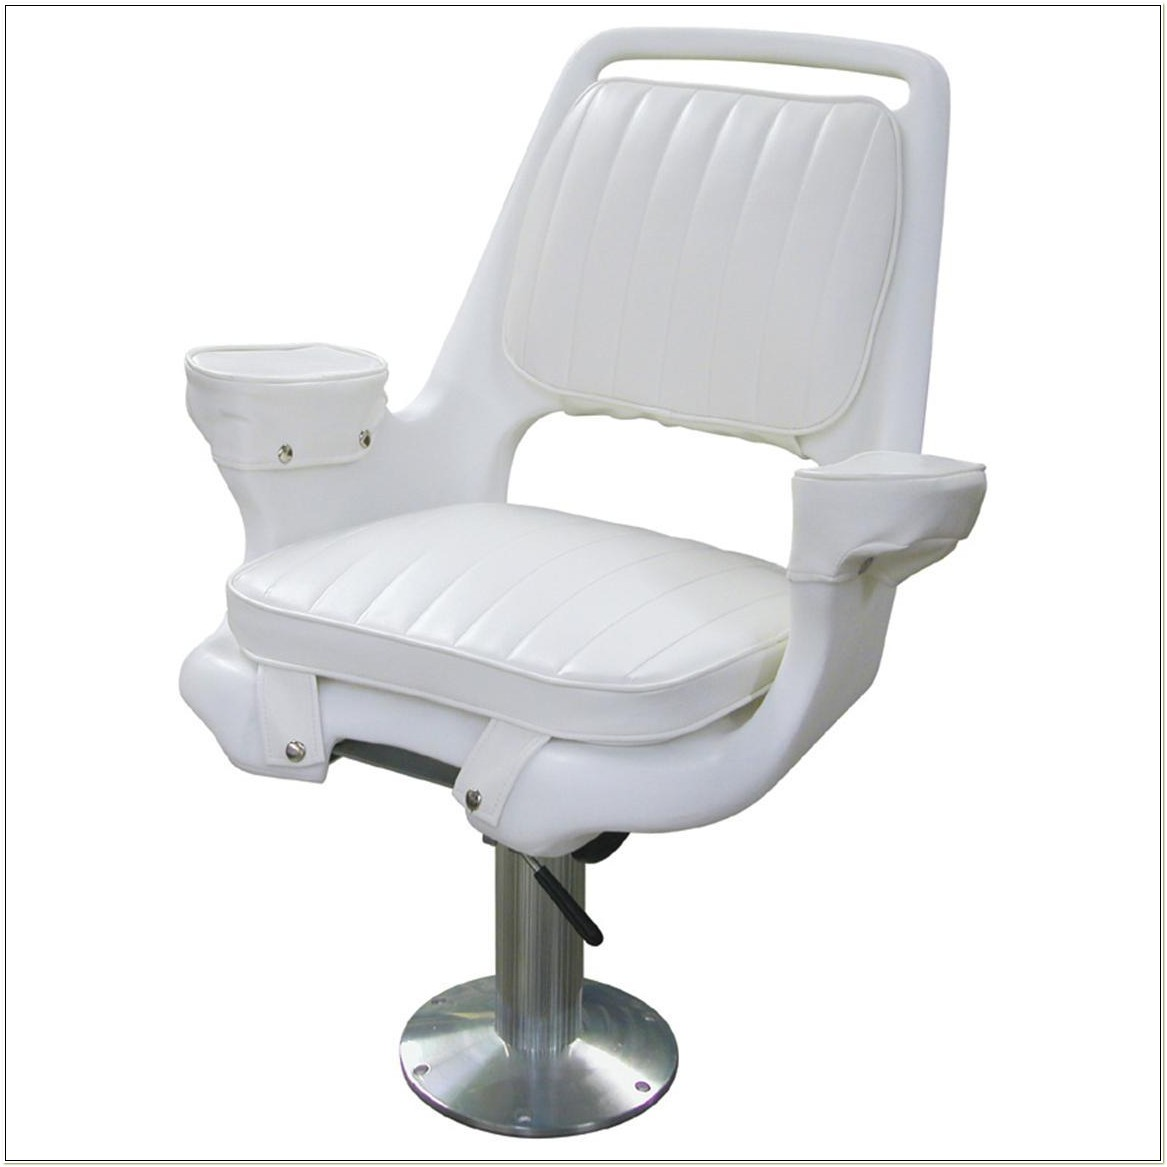 Boat Captains Chair With Pedestal